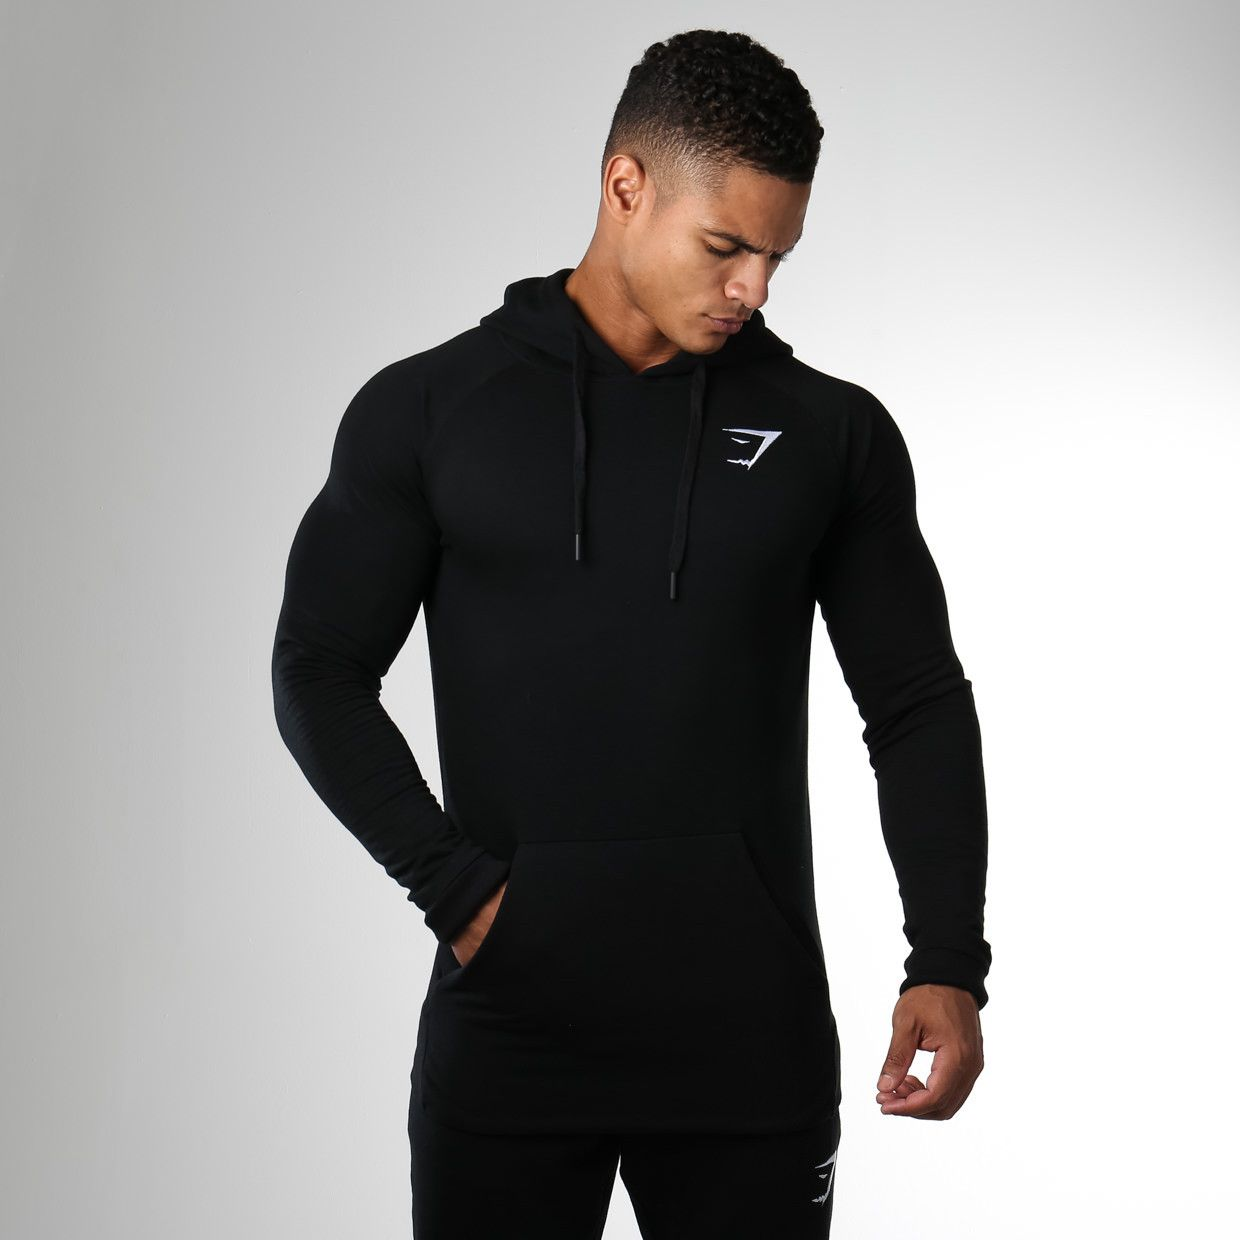 men s activewear, designer workout clothes, and gym clothes Whether you like to hit the road for a run or head to the gym at the end of a busy day, easy-to-wear men's workout clothes are essential to getting the most out of your routine.